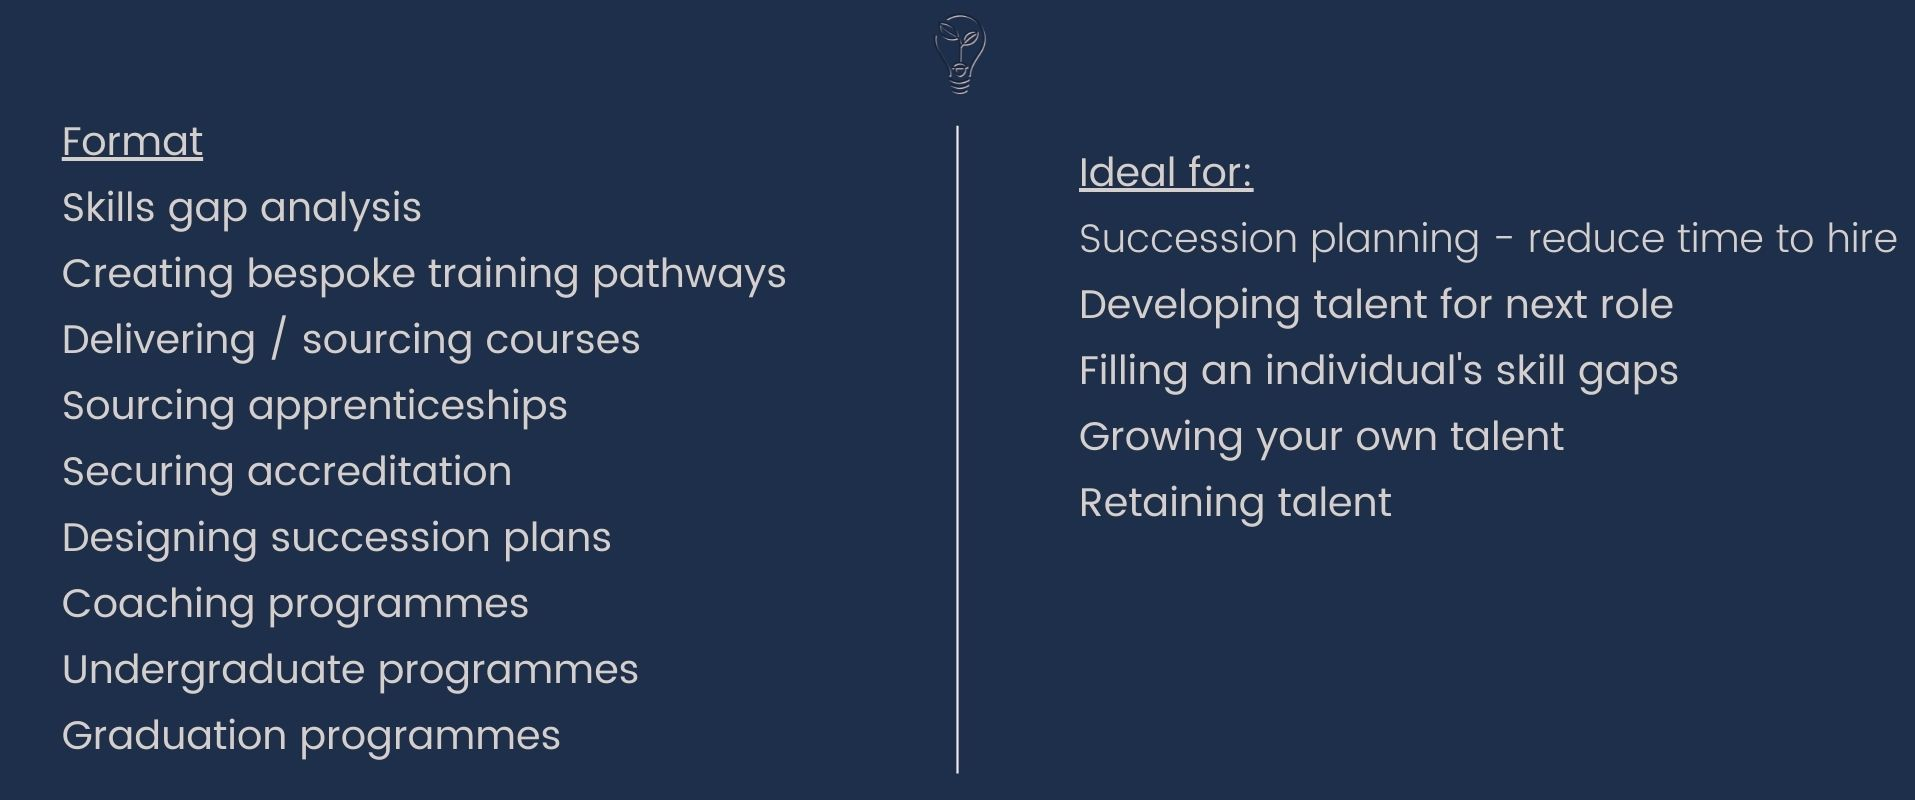 Develop and retain talent with eurika